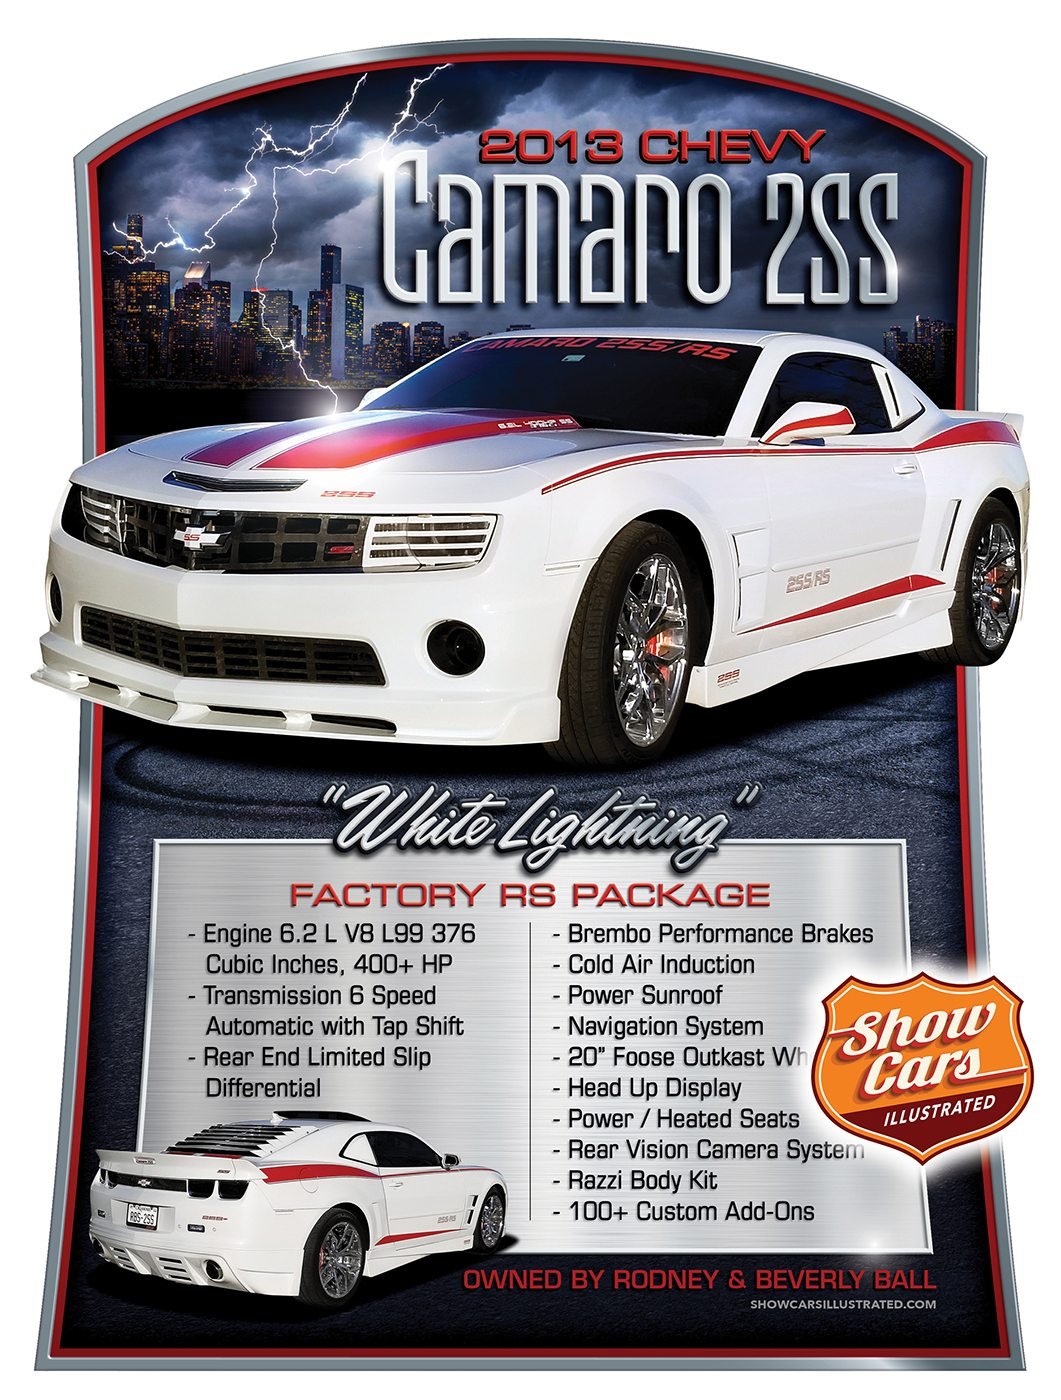 Car Show Signs Ideas Car Show Boards Car Show Display Board Ideas - Car show com